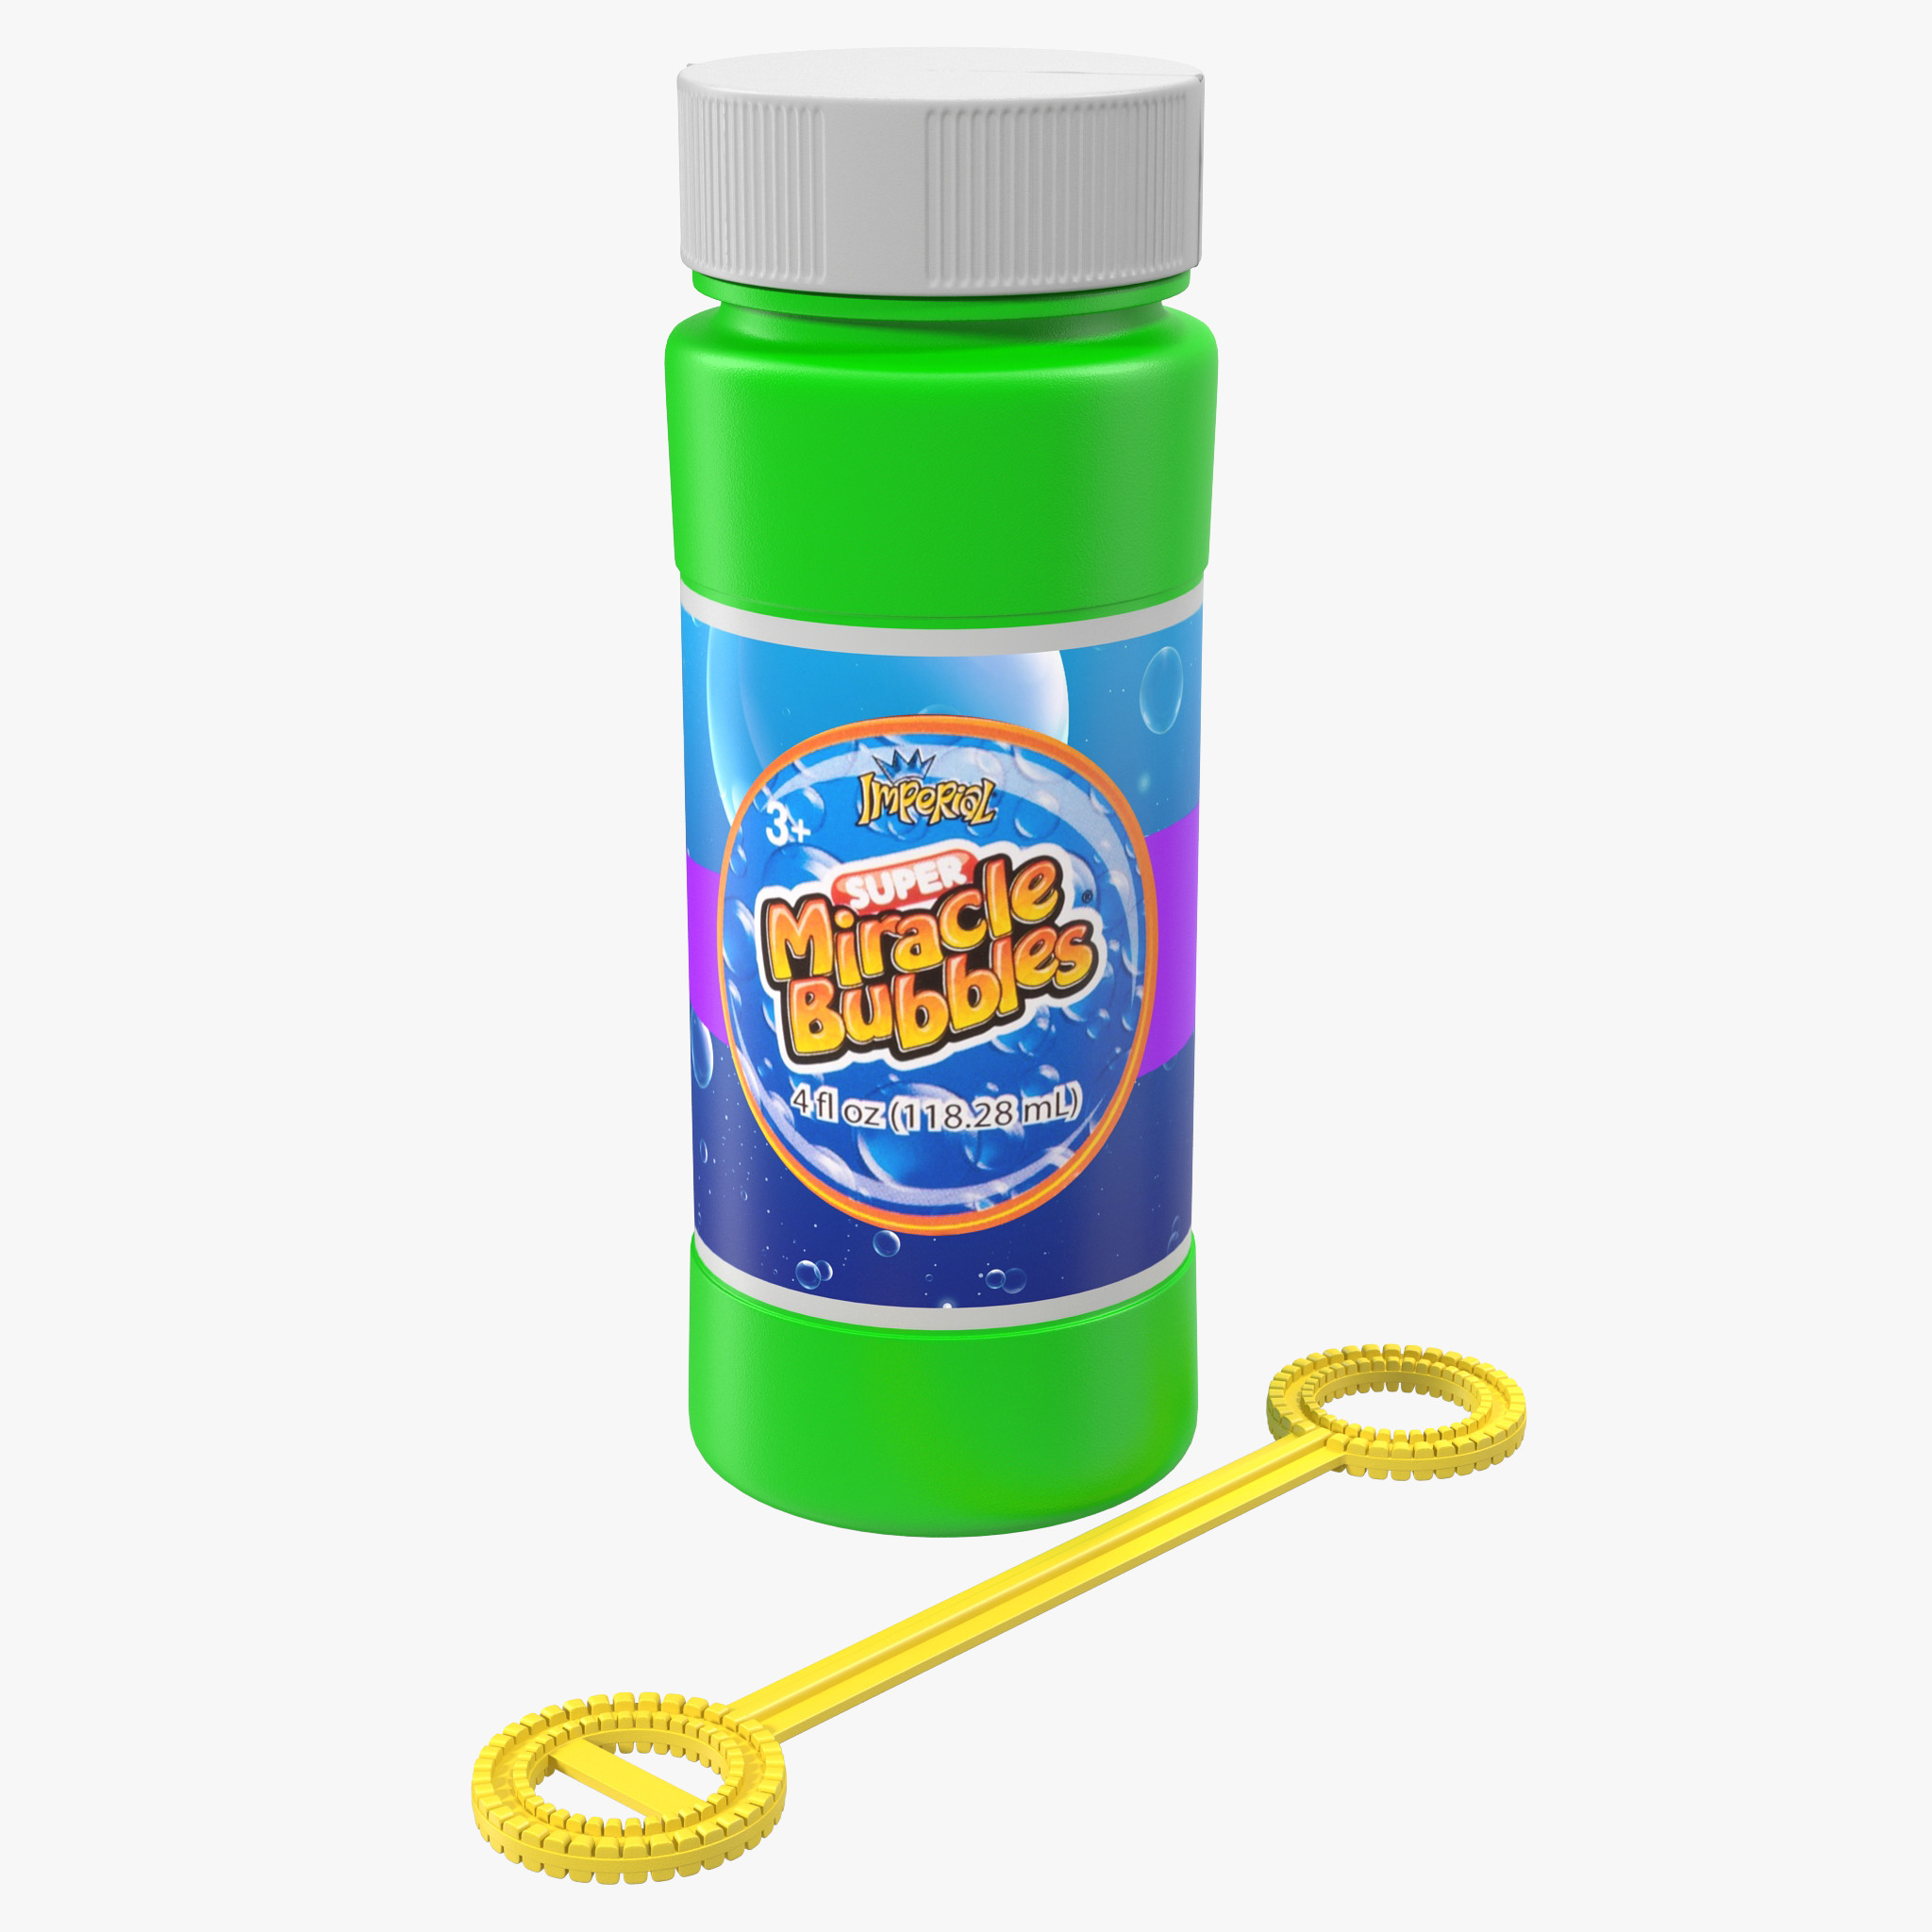 Clip art movieweb. Bubble clipart bubble bottle